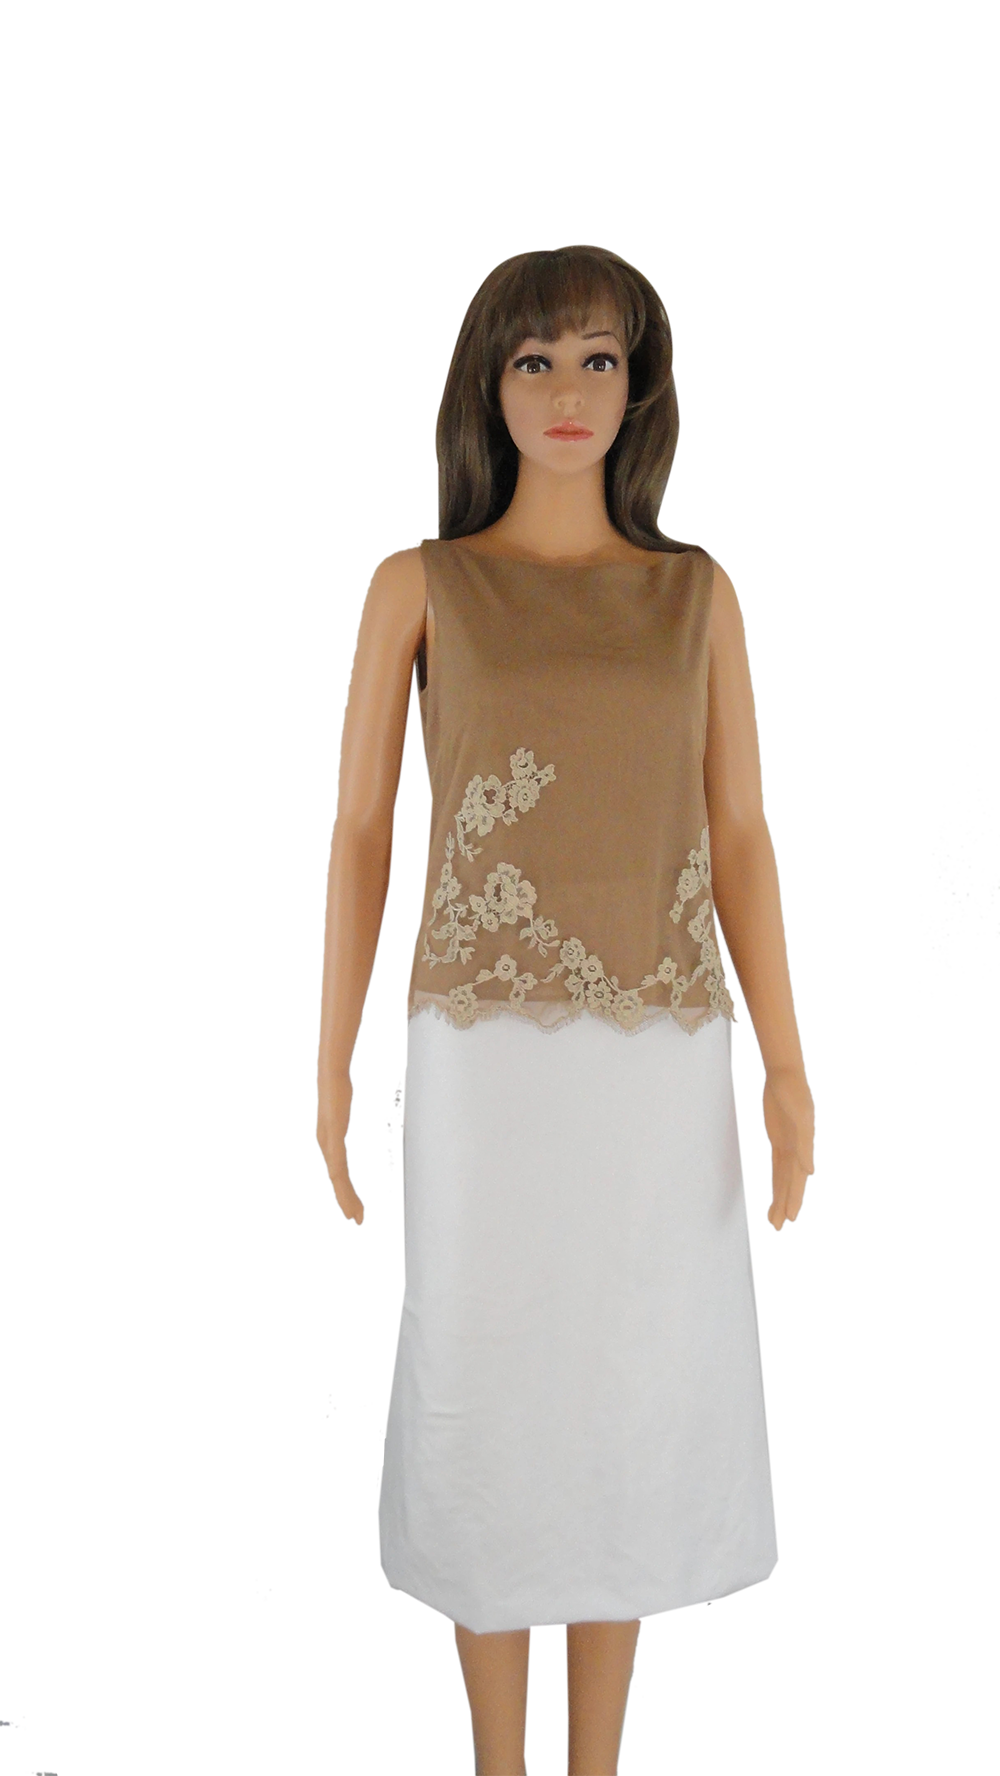 Anne Klein 70's Top Tan Lace Size 6 SKU 000209